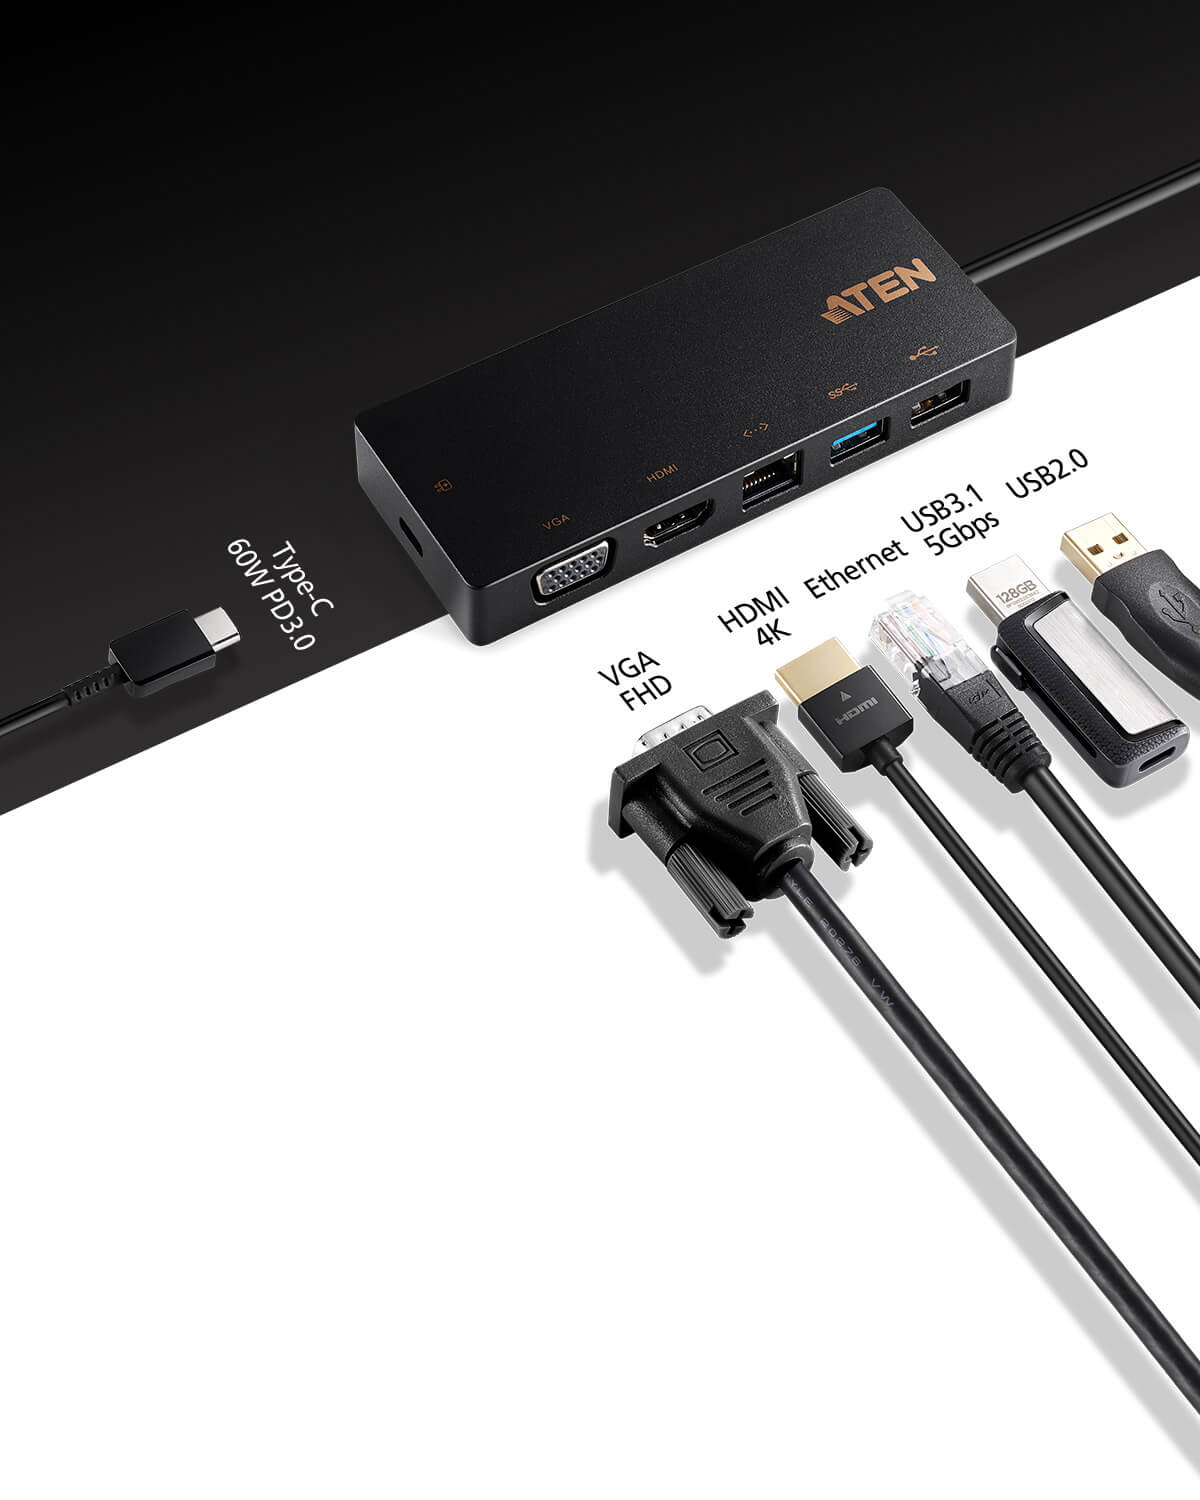 Mini USB-C-dockningsstation med flera portar och power pass-through-3